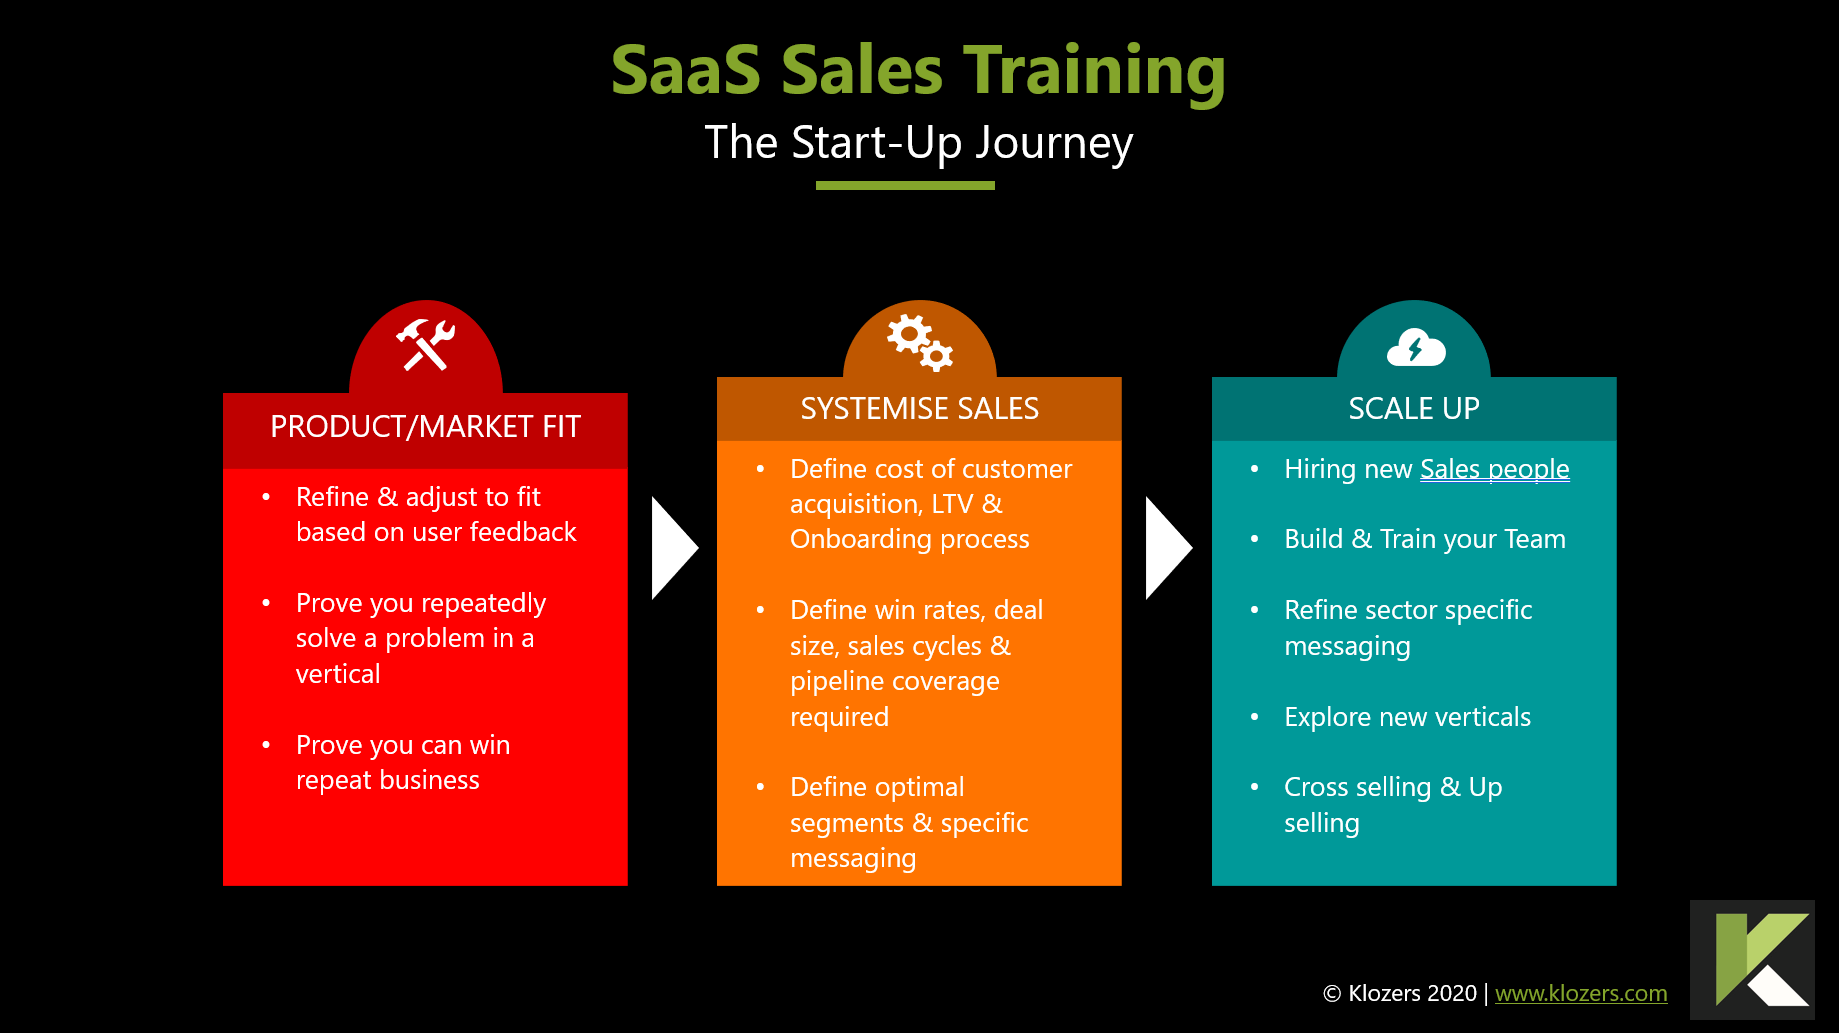 saas sales training